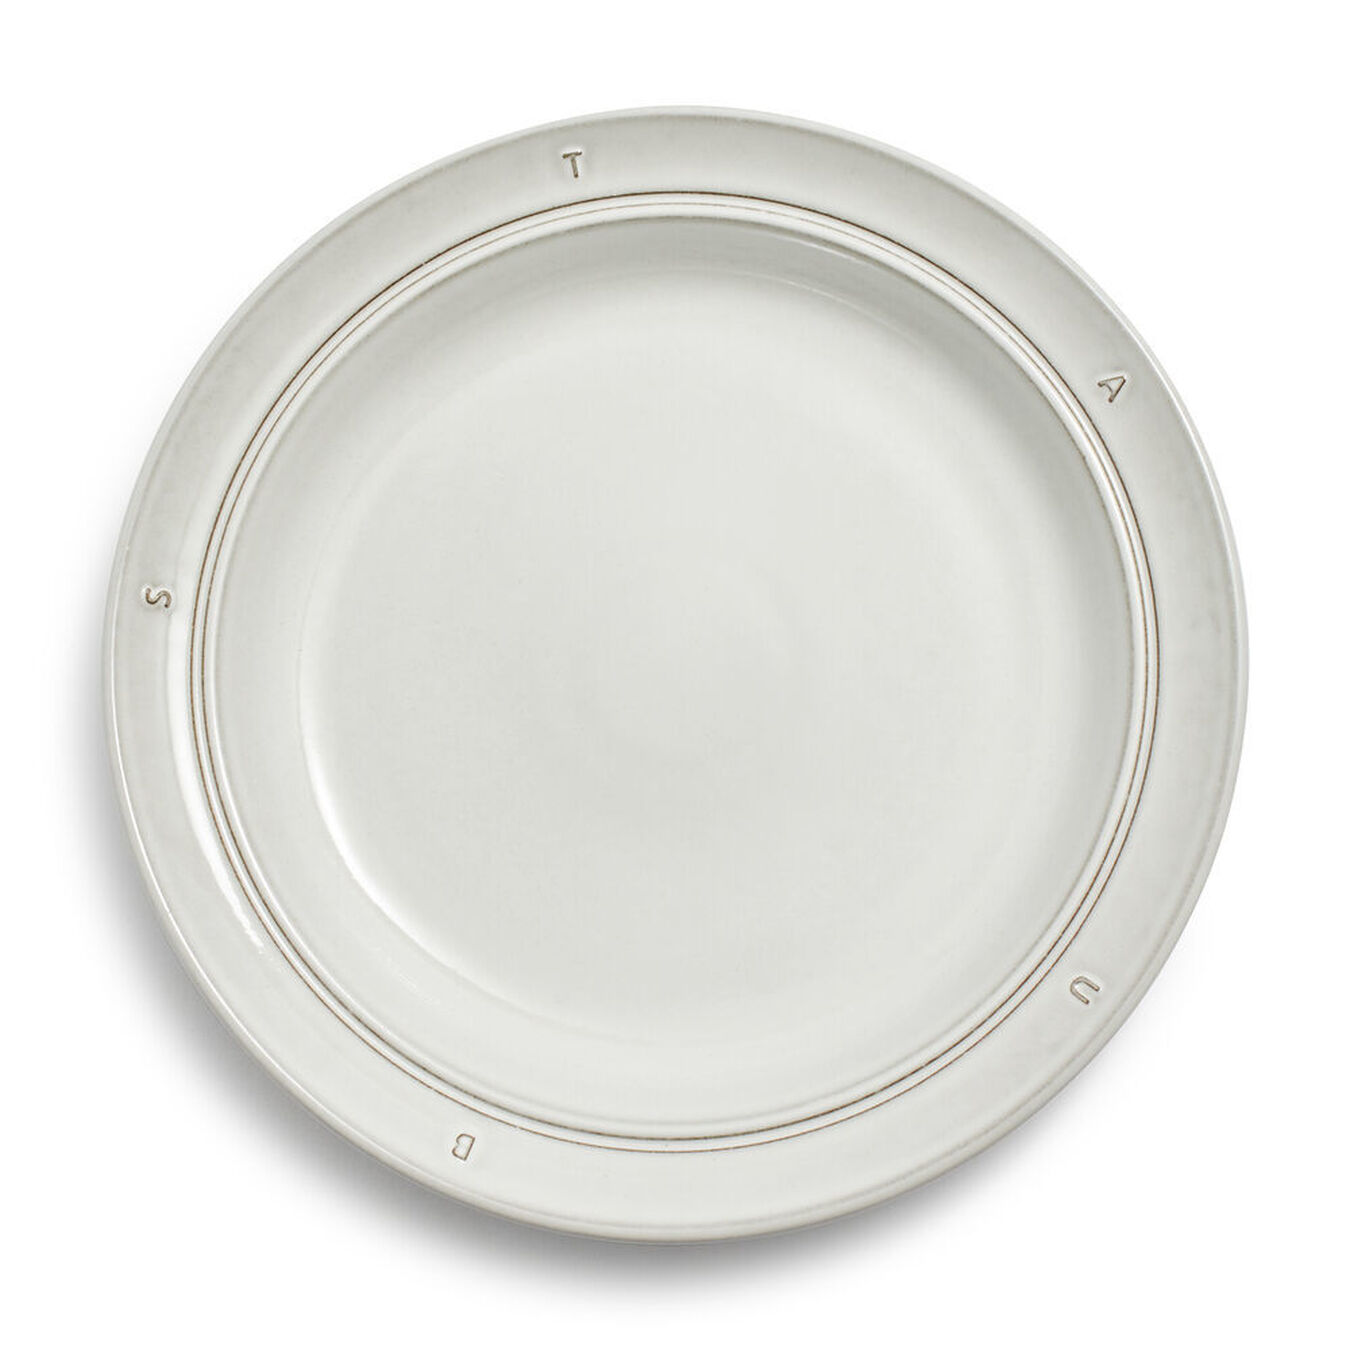 "Ceramic Soup Plate 24cm / 9.5"" - Off White,,large 1"